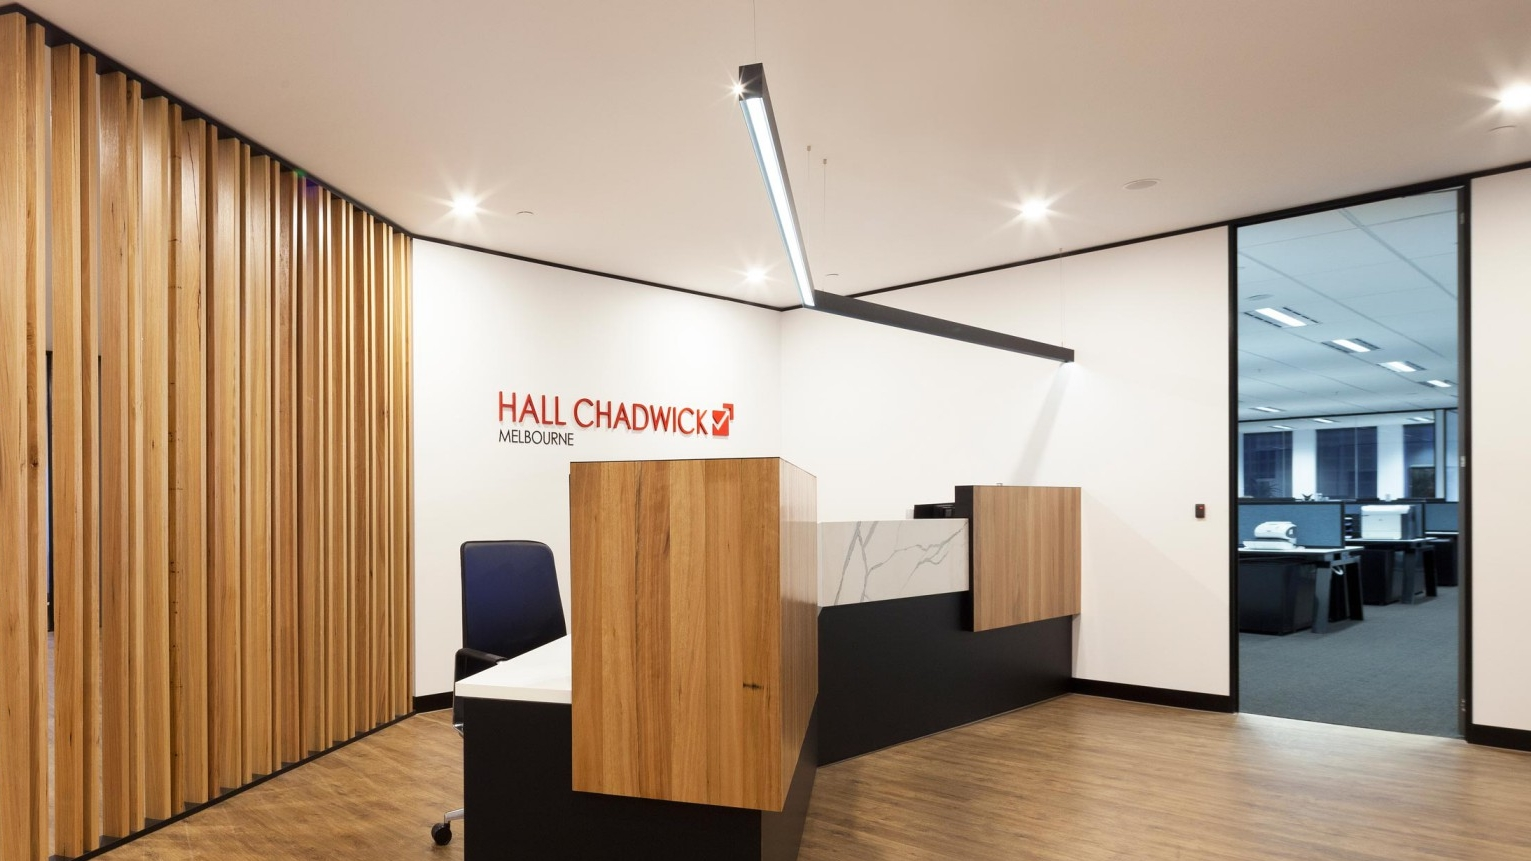 lighting-spaces-design-projects-hall-chadwick-01.jpg